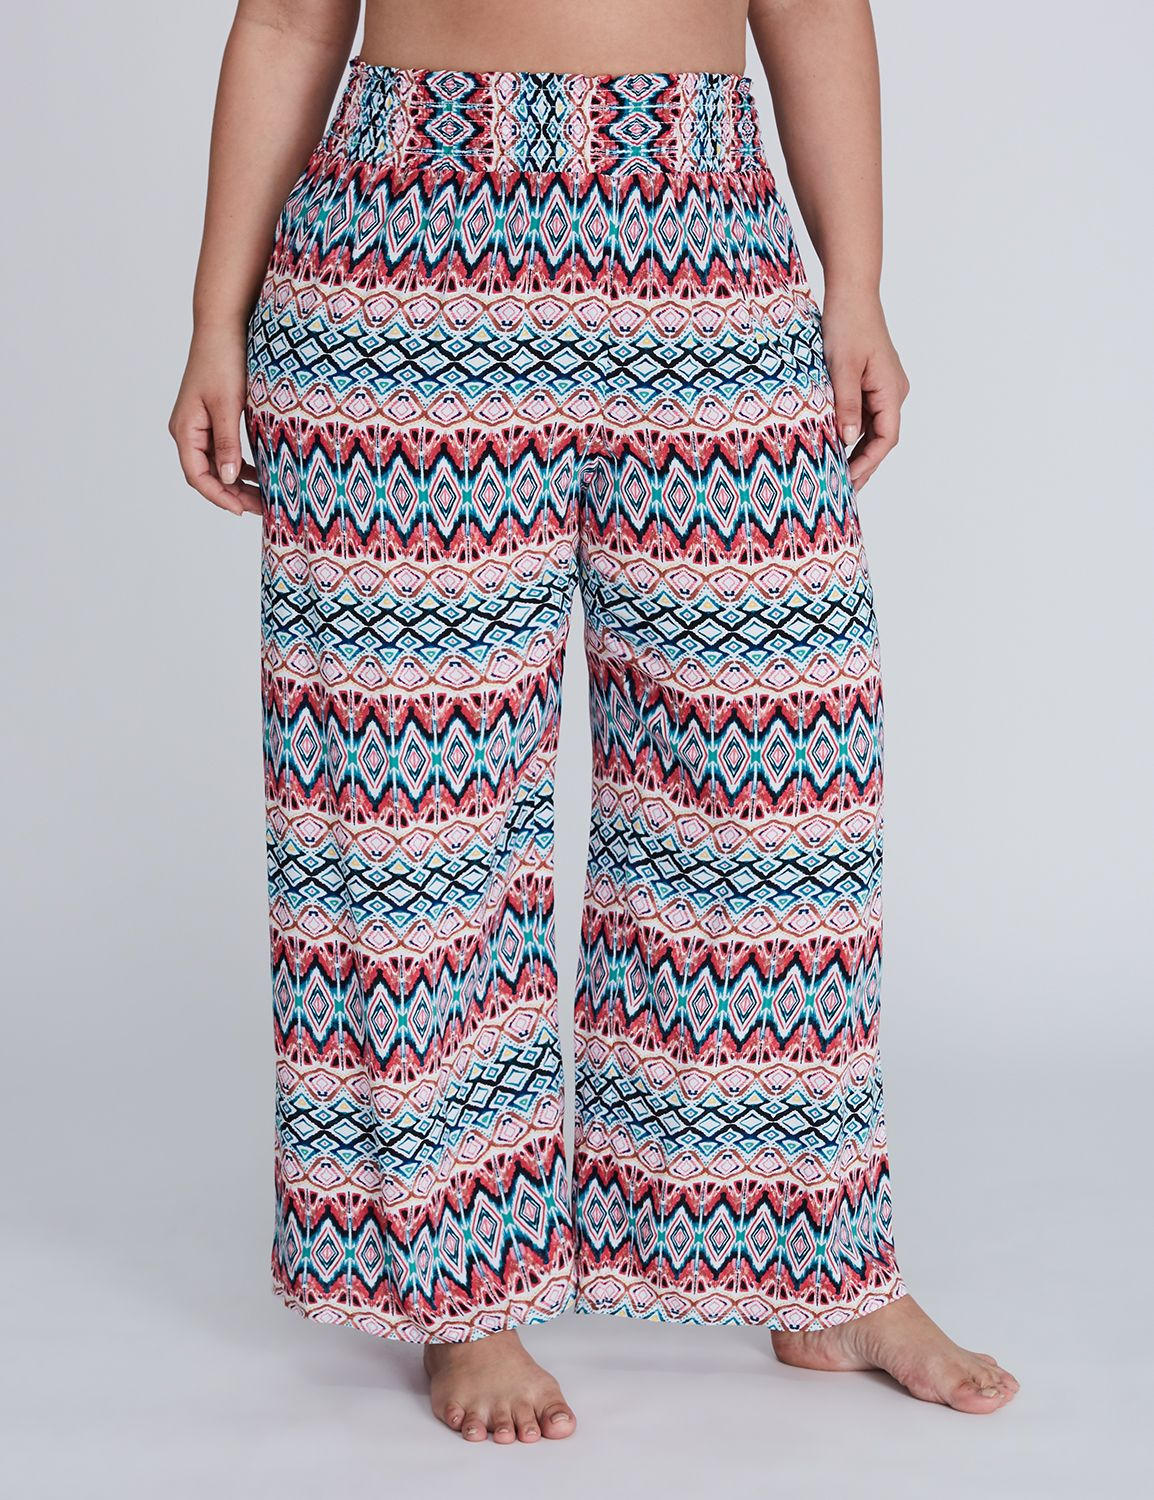 Lane Bryant Women's Woven Cover - Up Beach Pant 26 / 28 Vibrant Lines